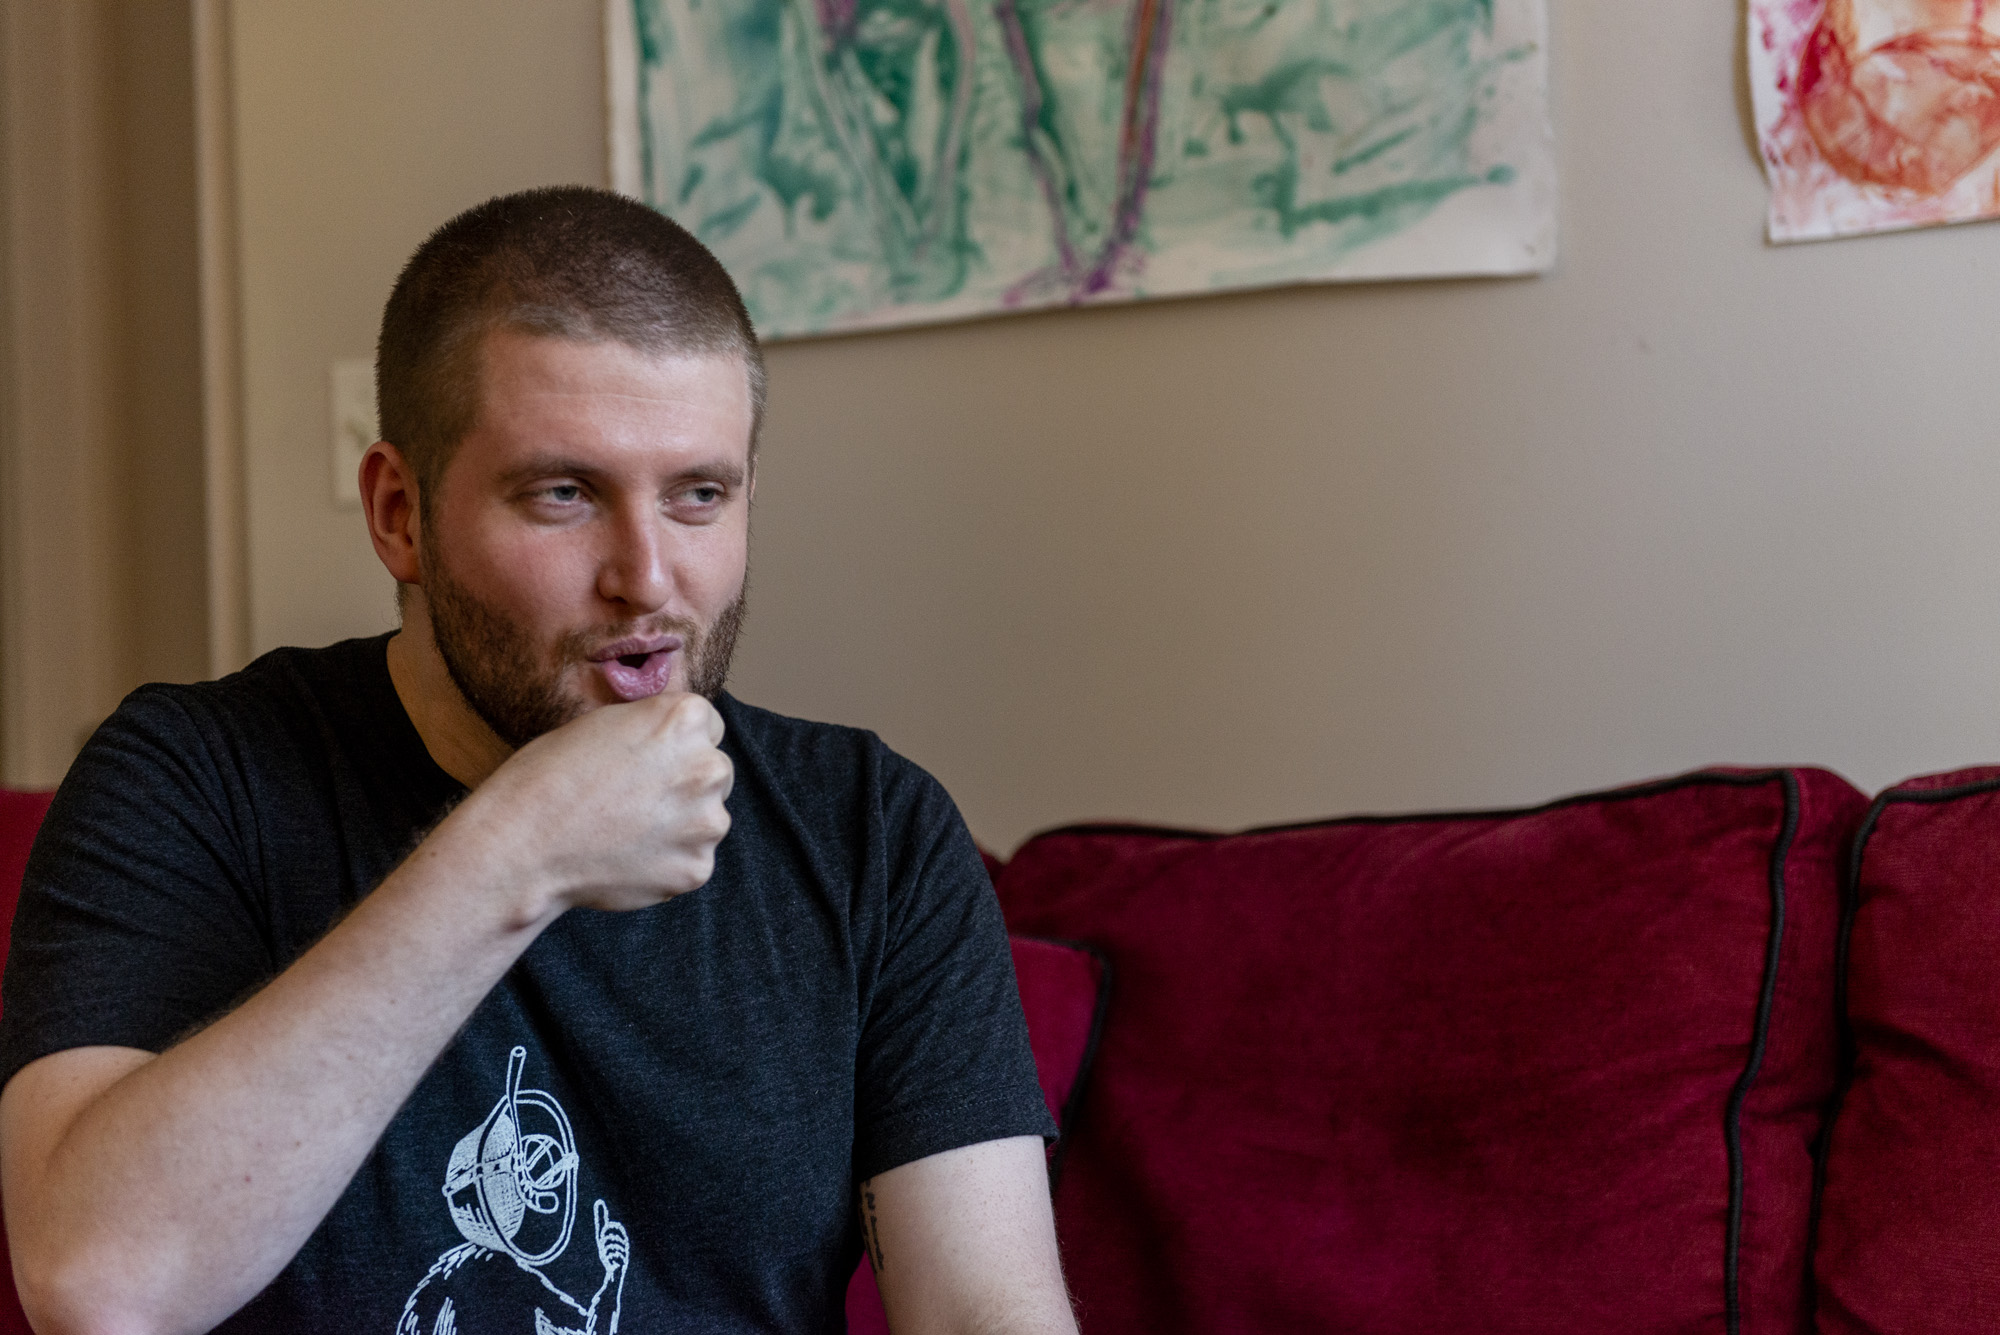 Image: The subject is in full focus. The red couch is in view behind them and the lower half of a few paintings on the wall which are green and orange/red. The artist is clearly re-enacting a blowjob here with his mouth being half closed and his hand in a fist and close to his mouth. Photo by Ryan Edmund Thiel